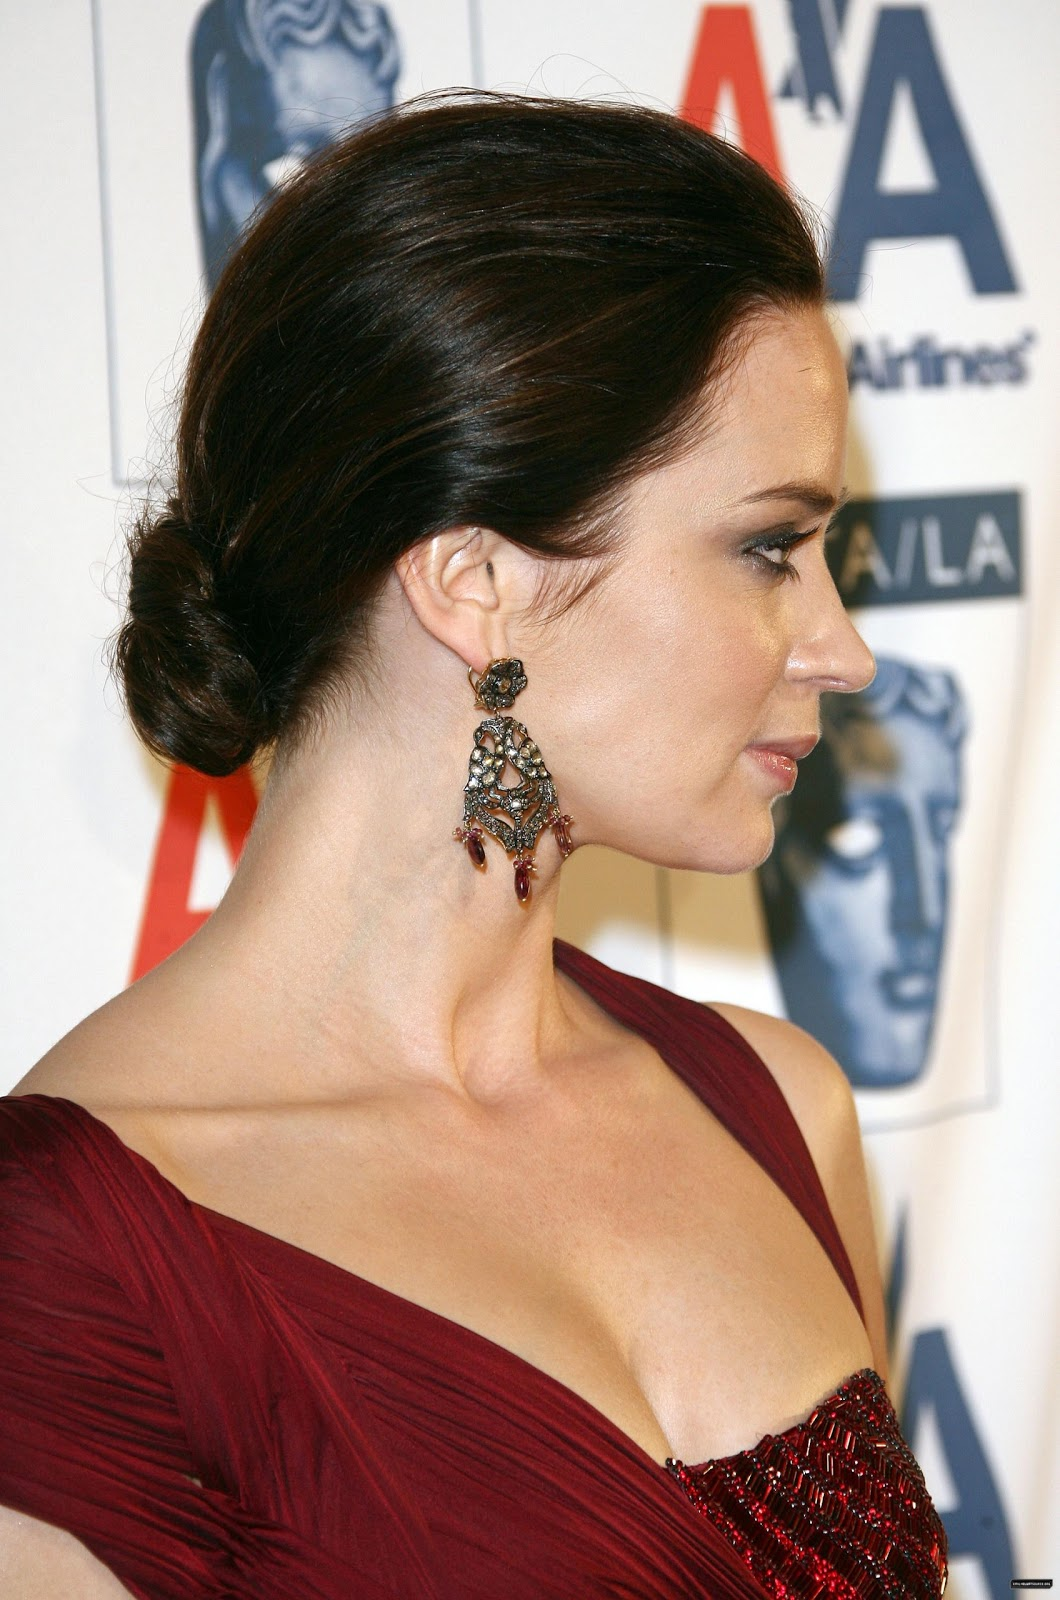 http://2.bp.blogspot.com/-LXPbS5vBWgc/UBBbRFWGo7I/AAAAAAAAFHY/e-wCuVLHRY8/s1600/Emily-Blunt-hairstyles-celebrity-actress-film-wallpapers-longhair-pictures-blunt-emily%2B(18).jpg